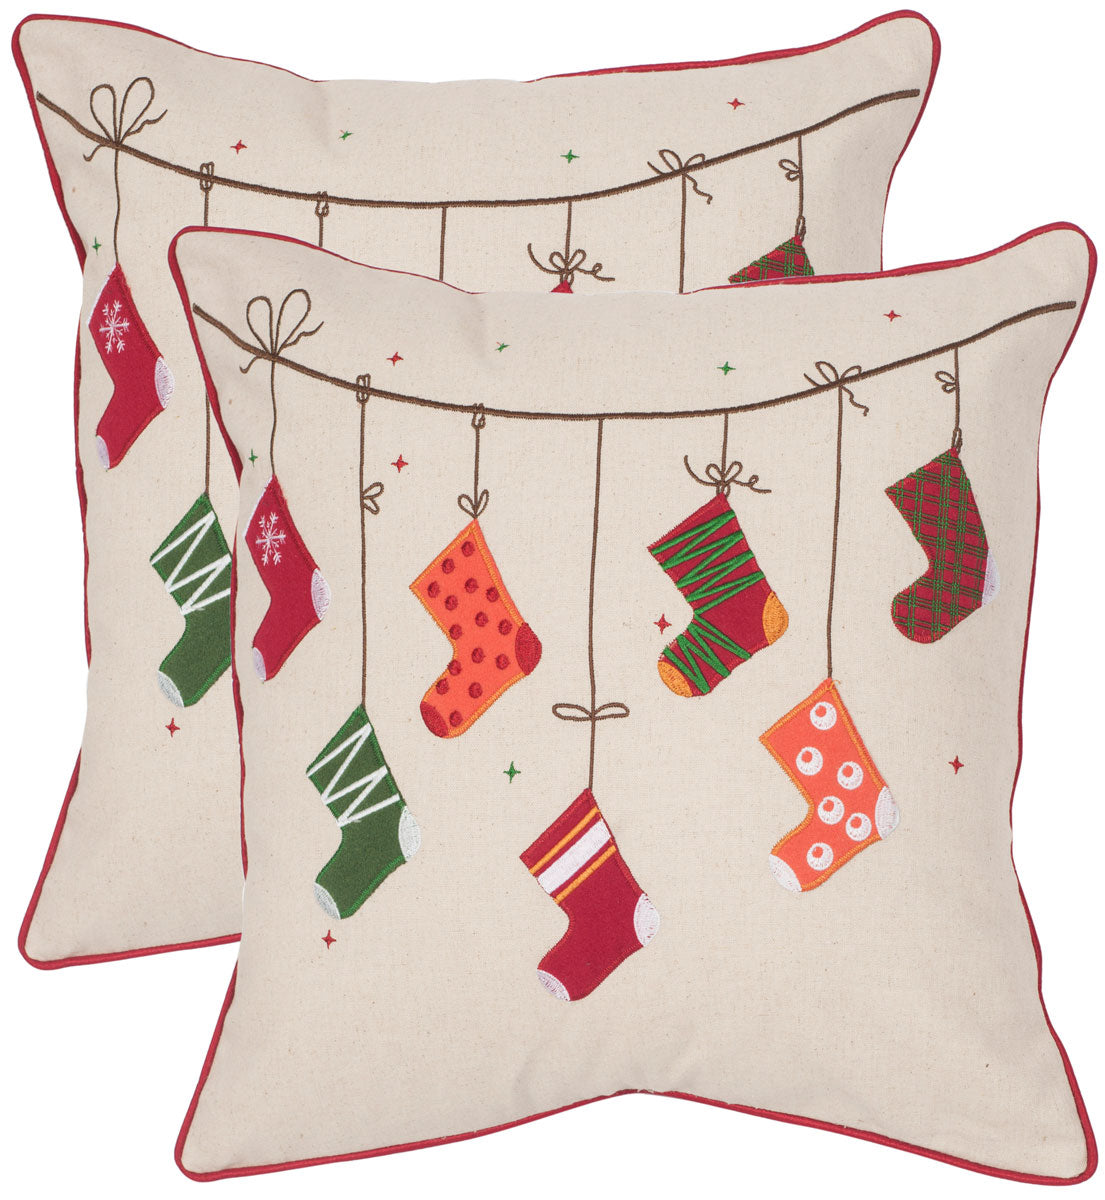 Holiday Stockings Pillow.